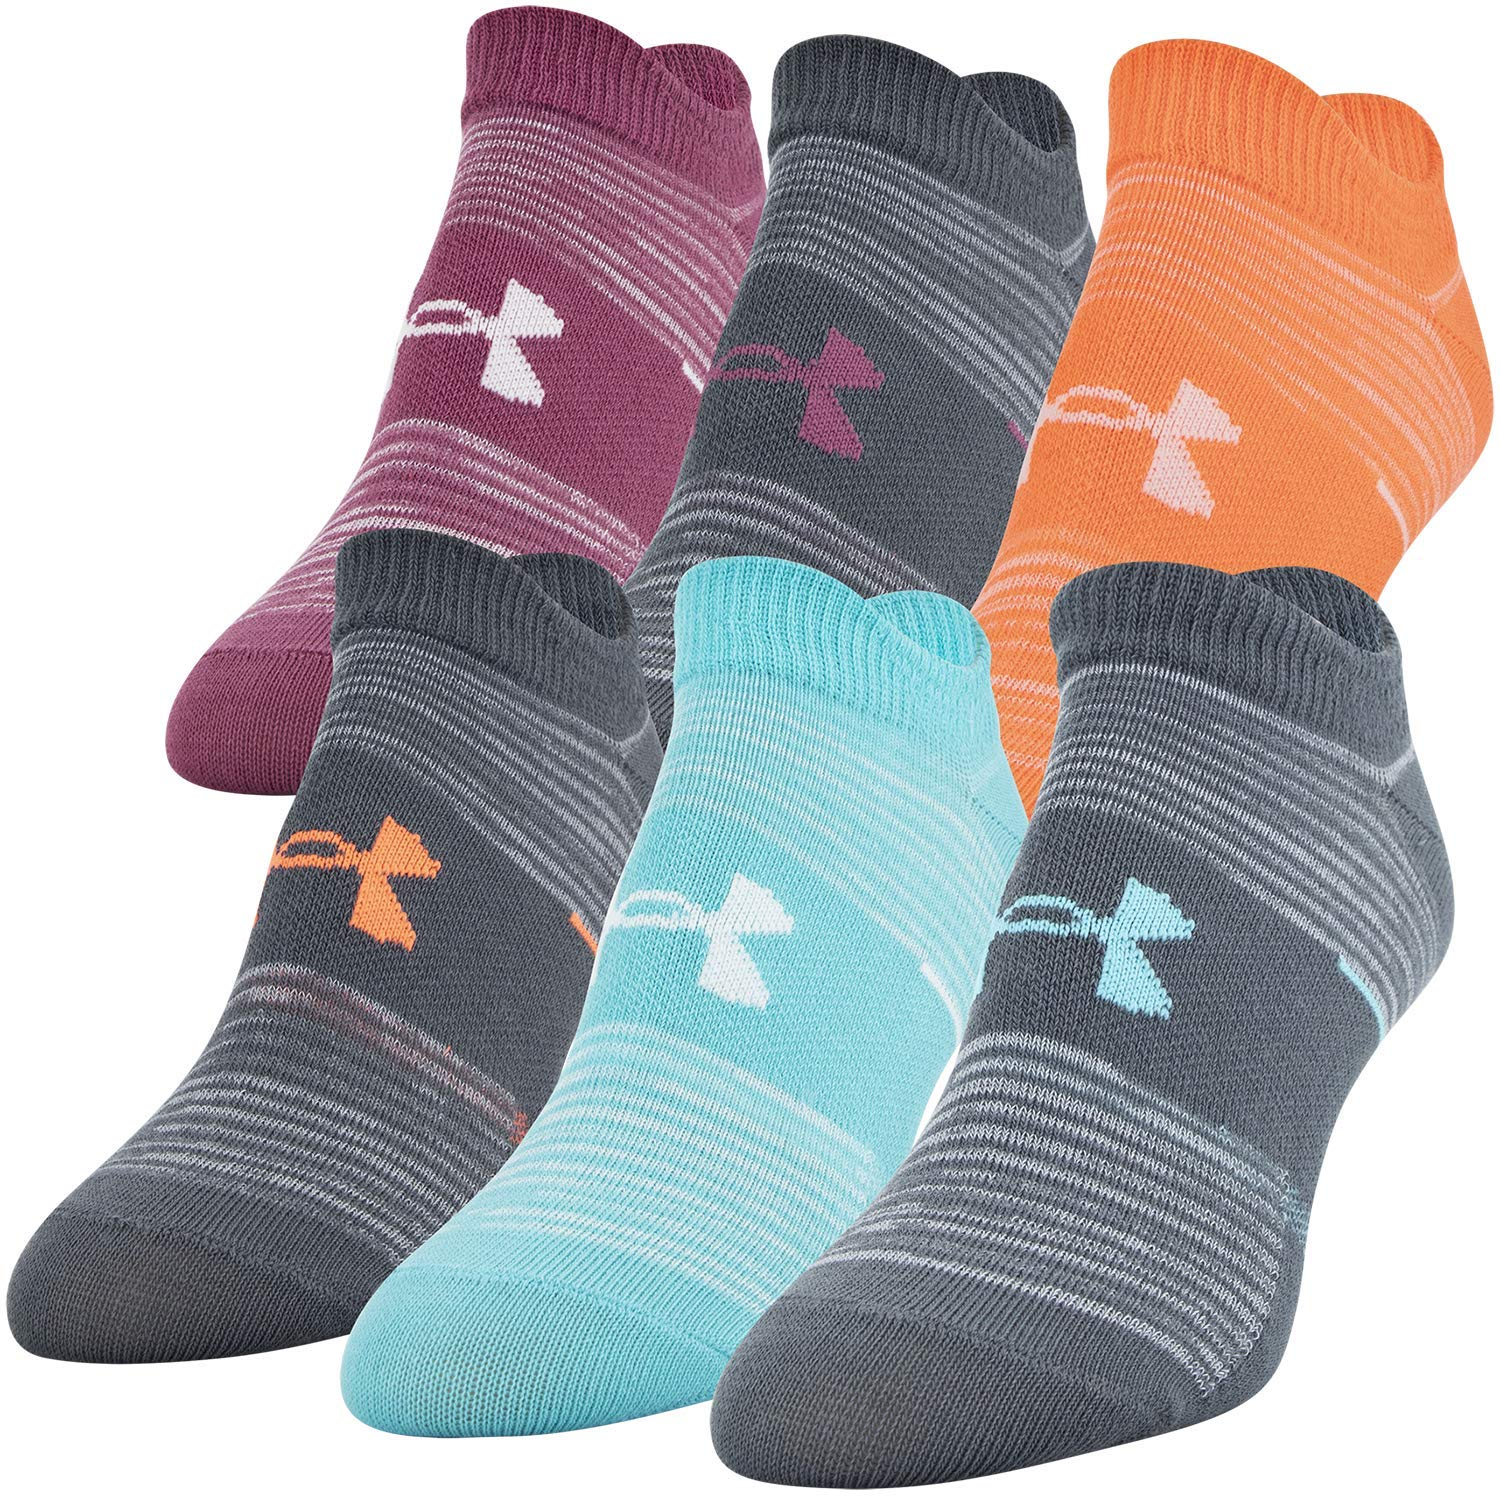 Under Armour Essential No Show Socks, 6-Pair, Pitch Gray Stripe, Shoe Size: Womens 6-9 by Under Armour